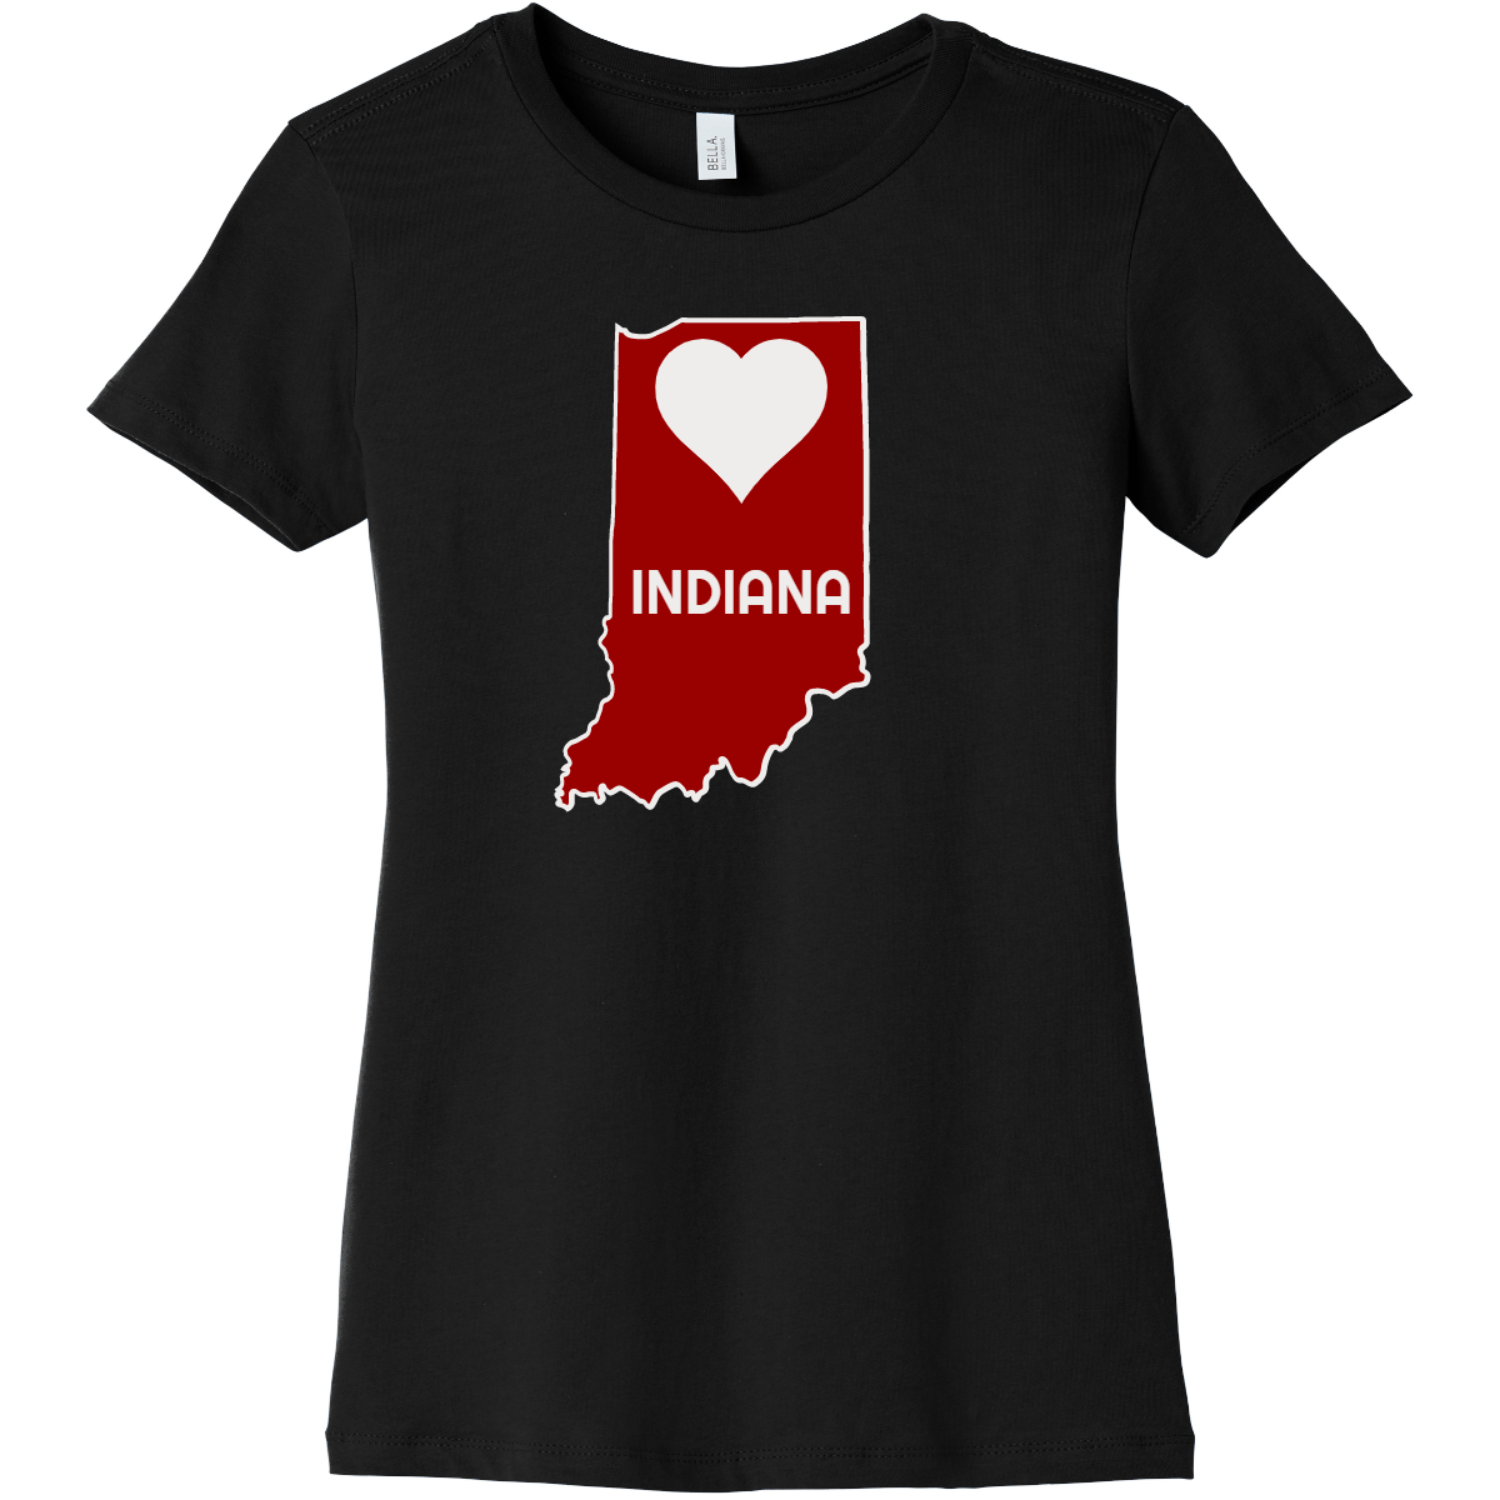 Indiana Heart State T Shirt For Women Black Bella Canvas 6004 Ladies The Favorite Tee